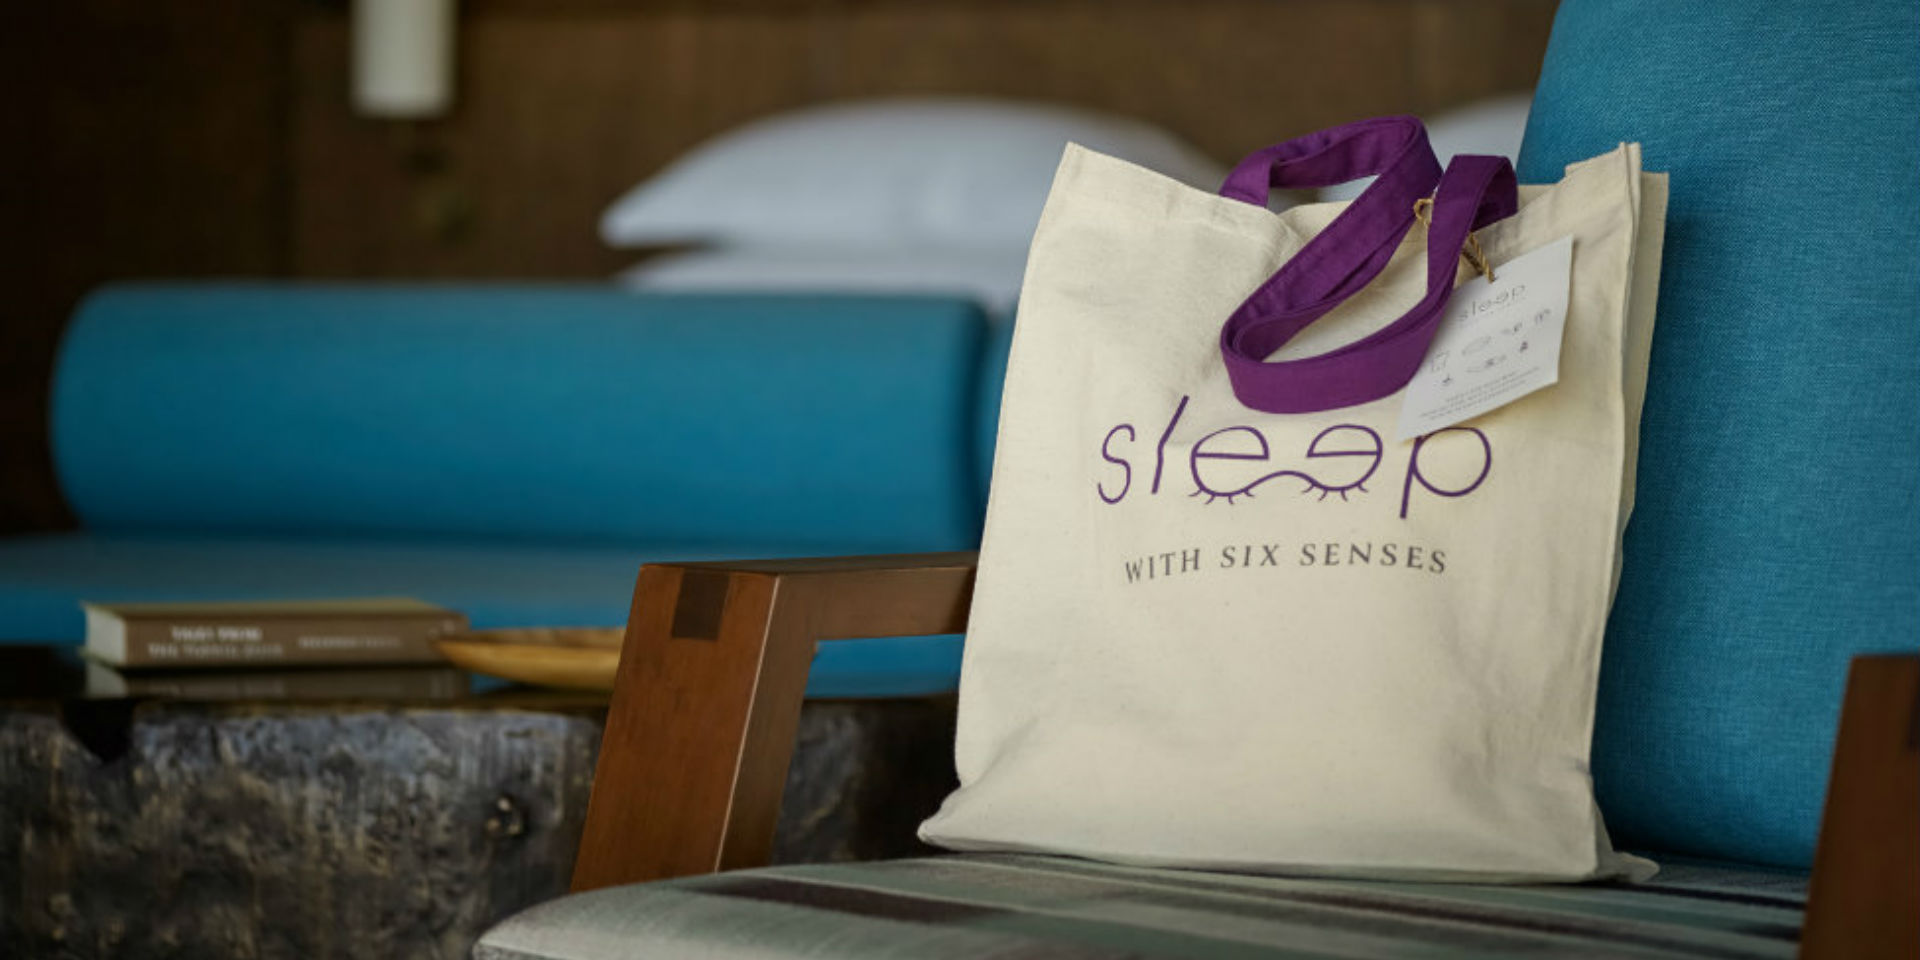 Six Senses focusing on sleep as essential part of guest experience